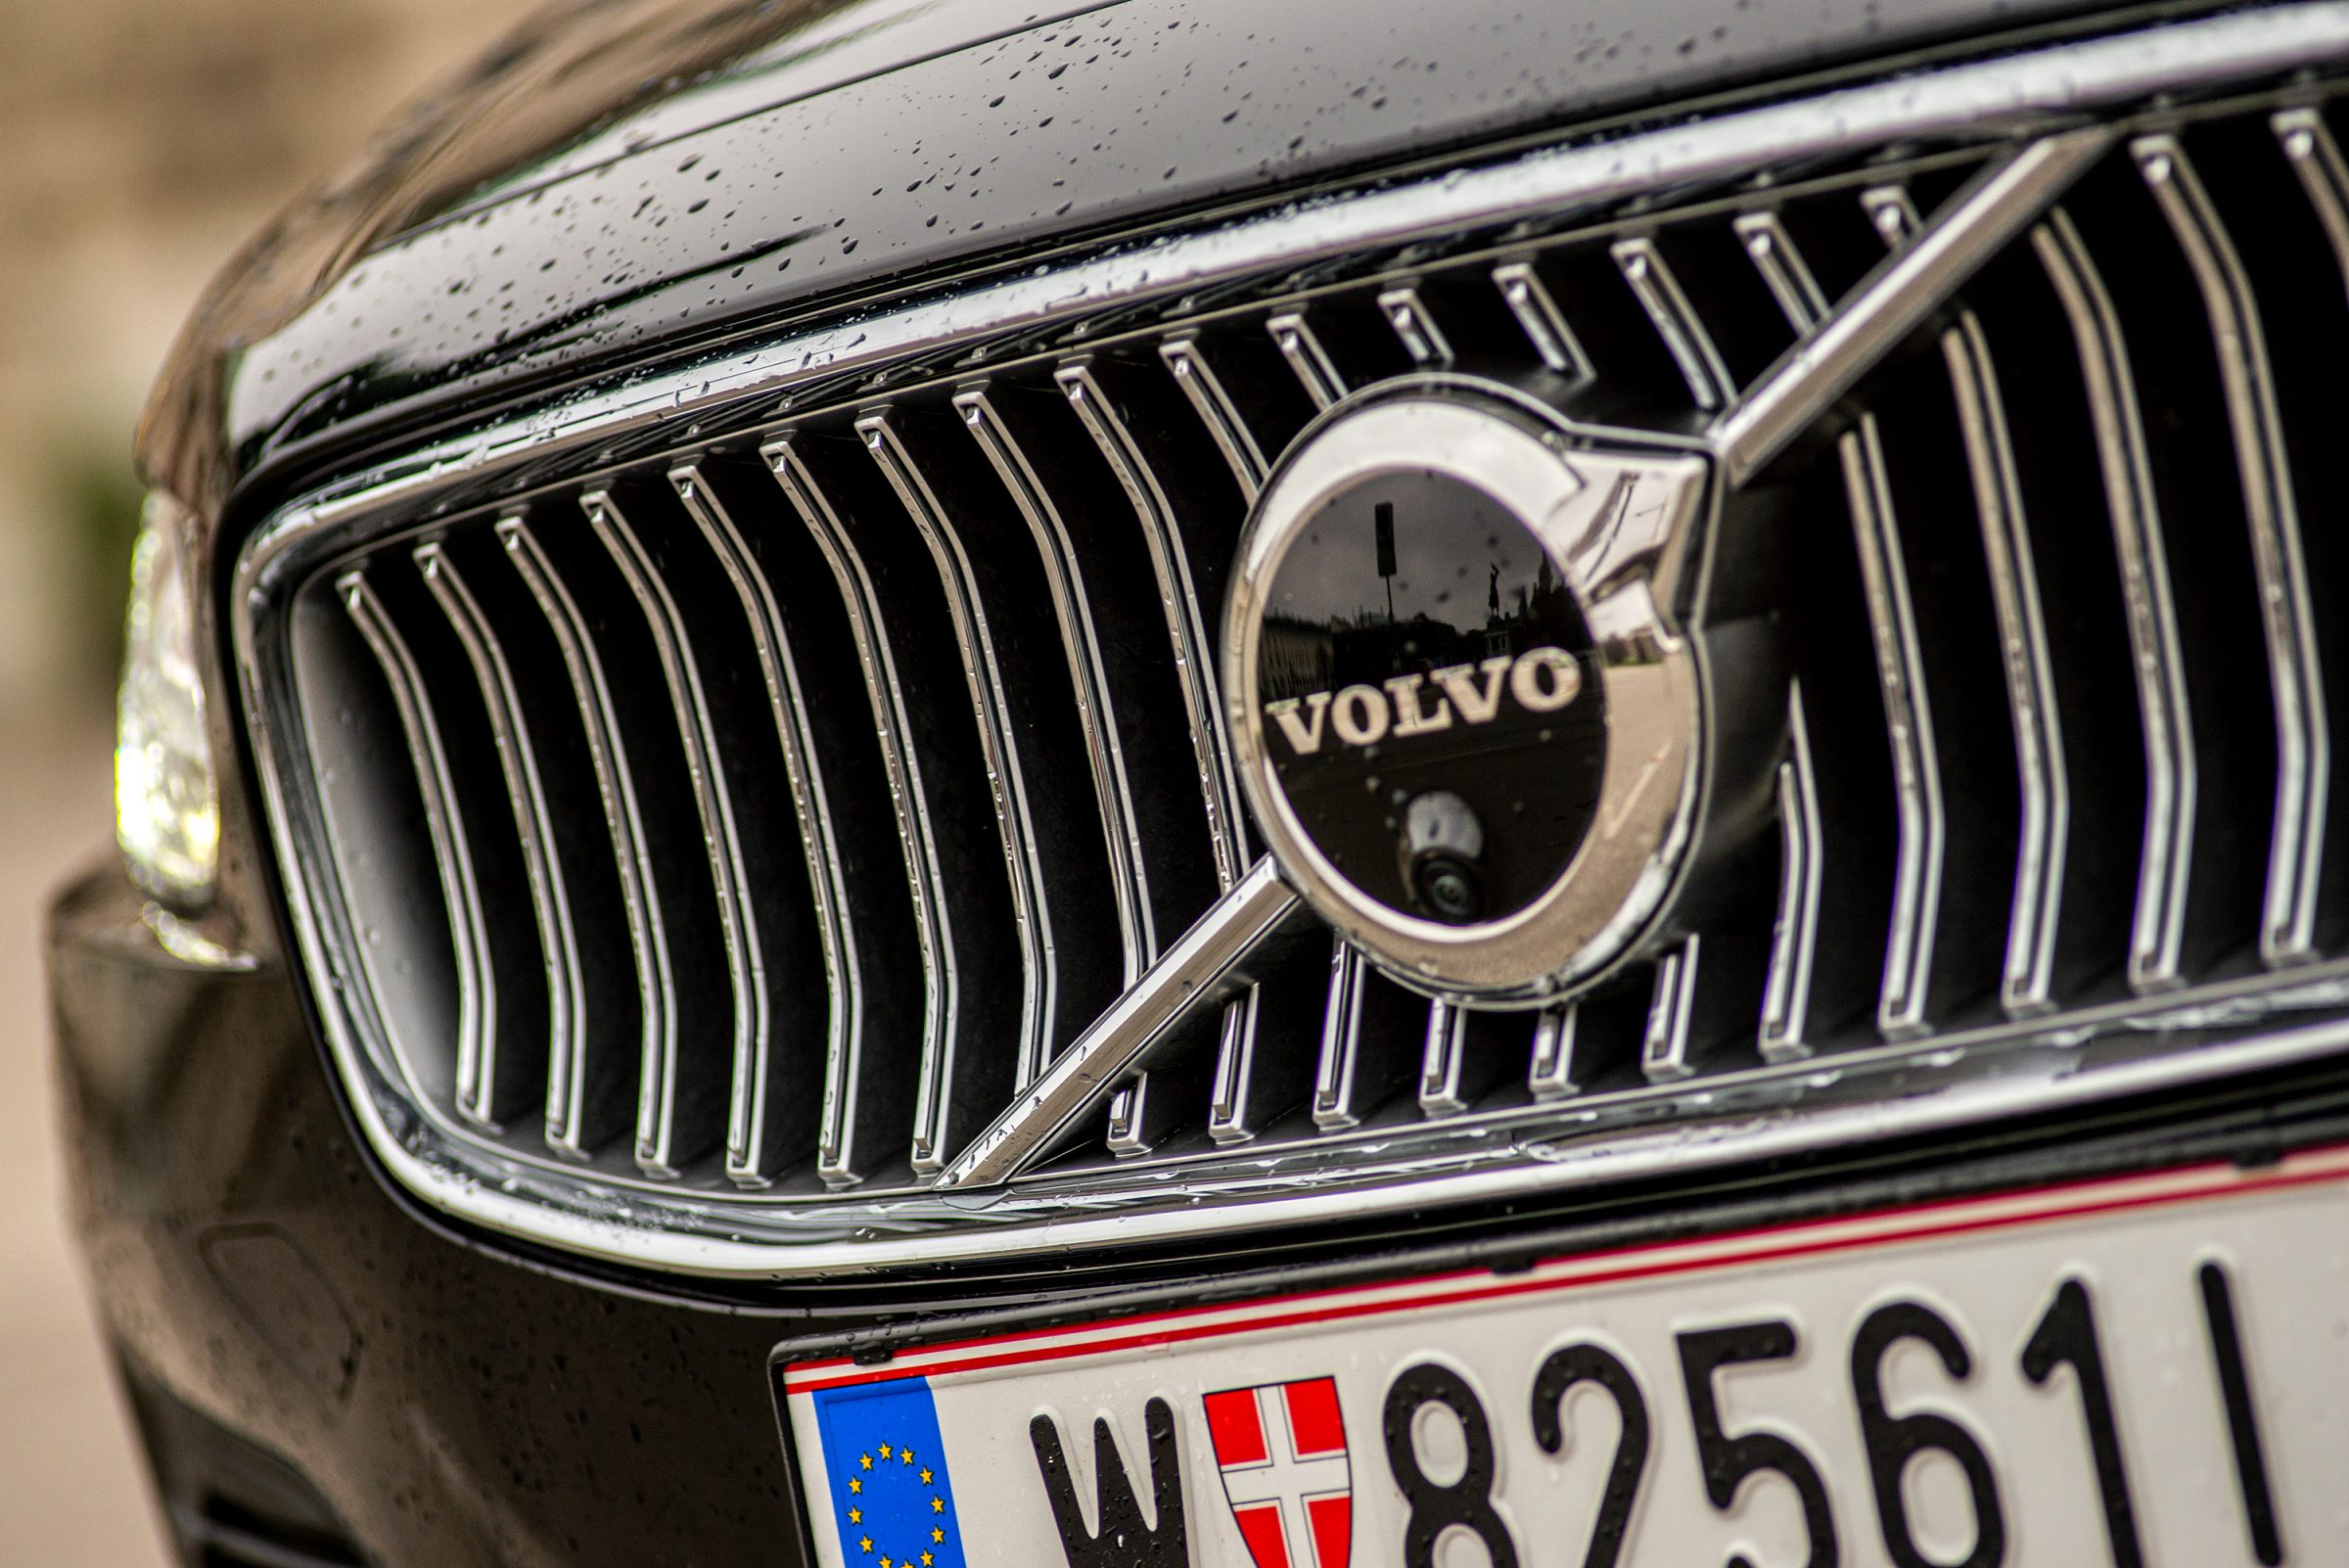 2021 volvo reviews Specs and Review